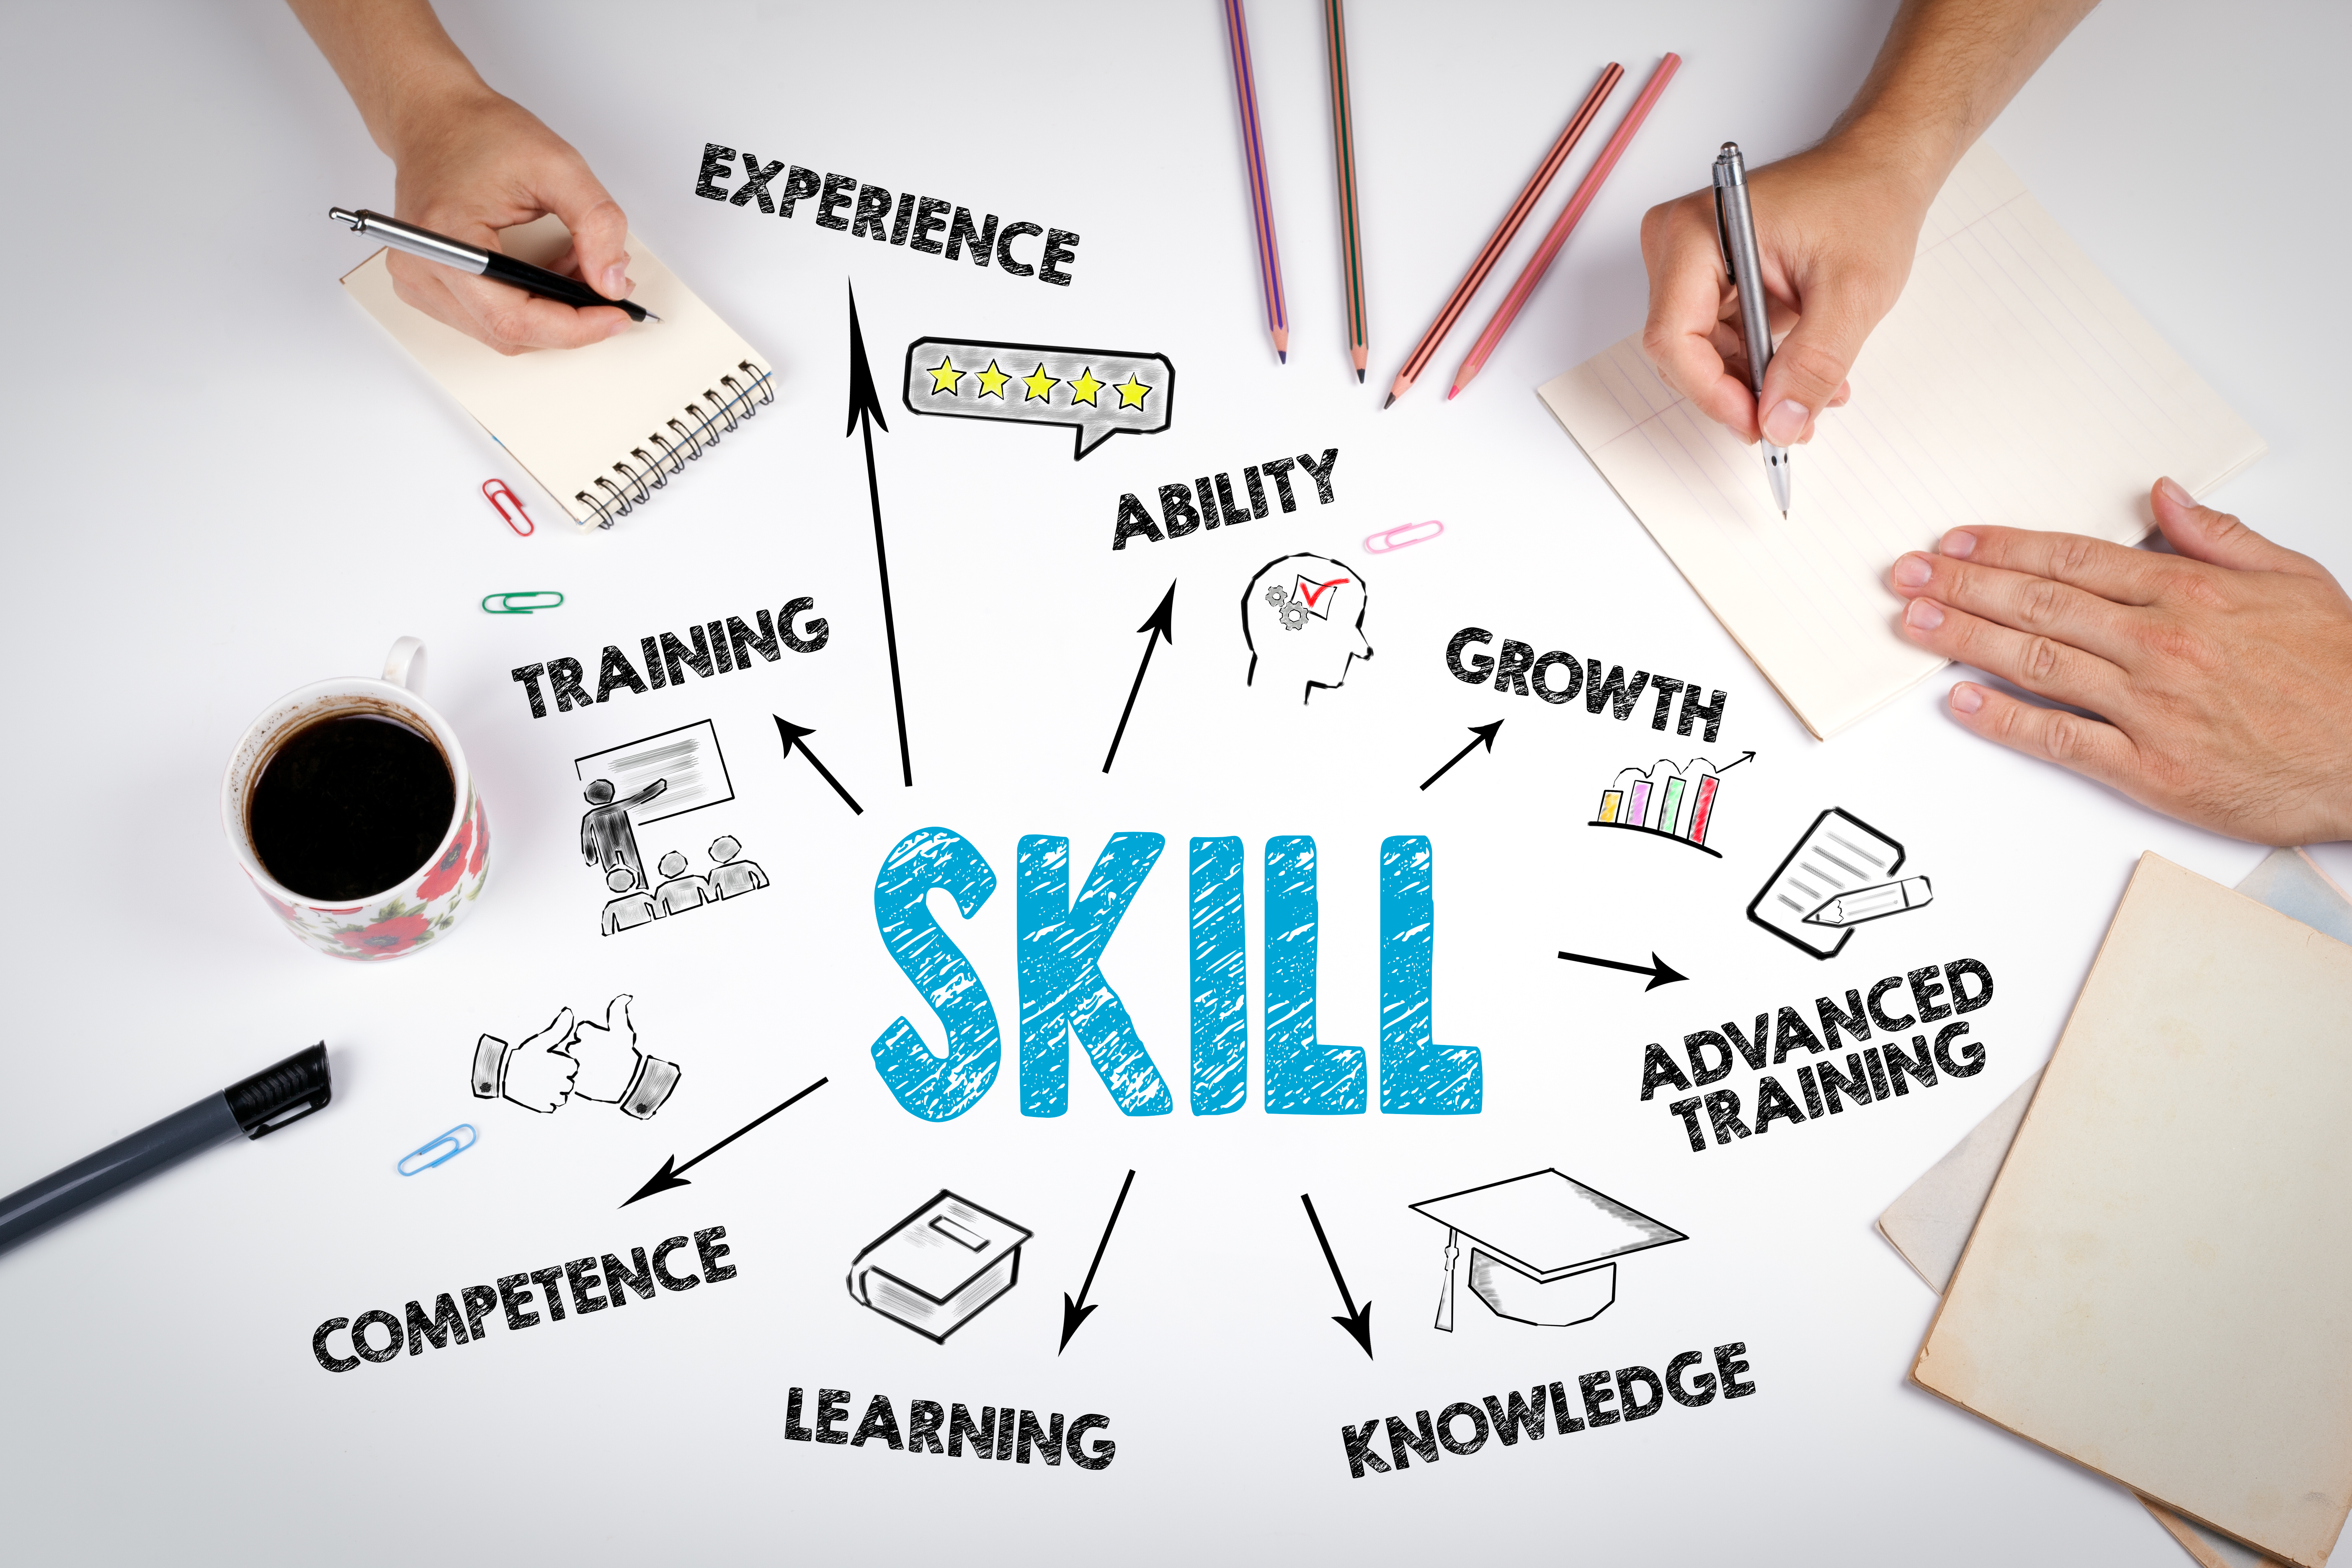 Improving the quality and monitoring of basic skills education in the Netherlands